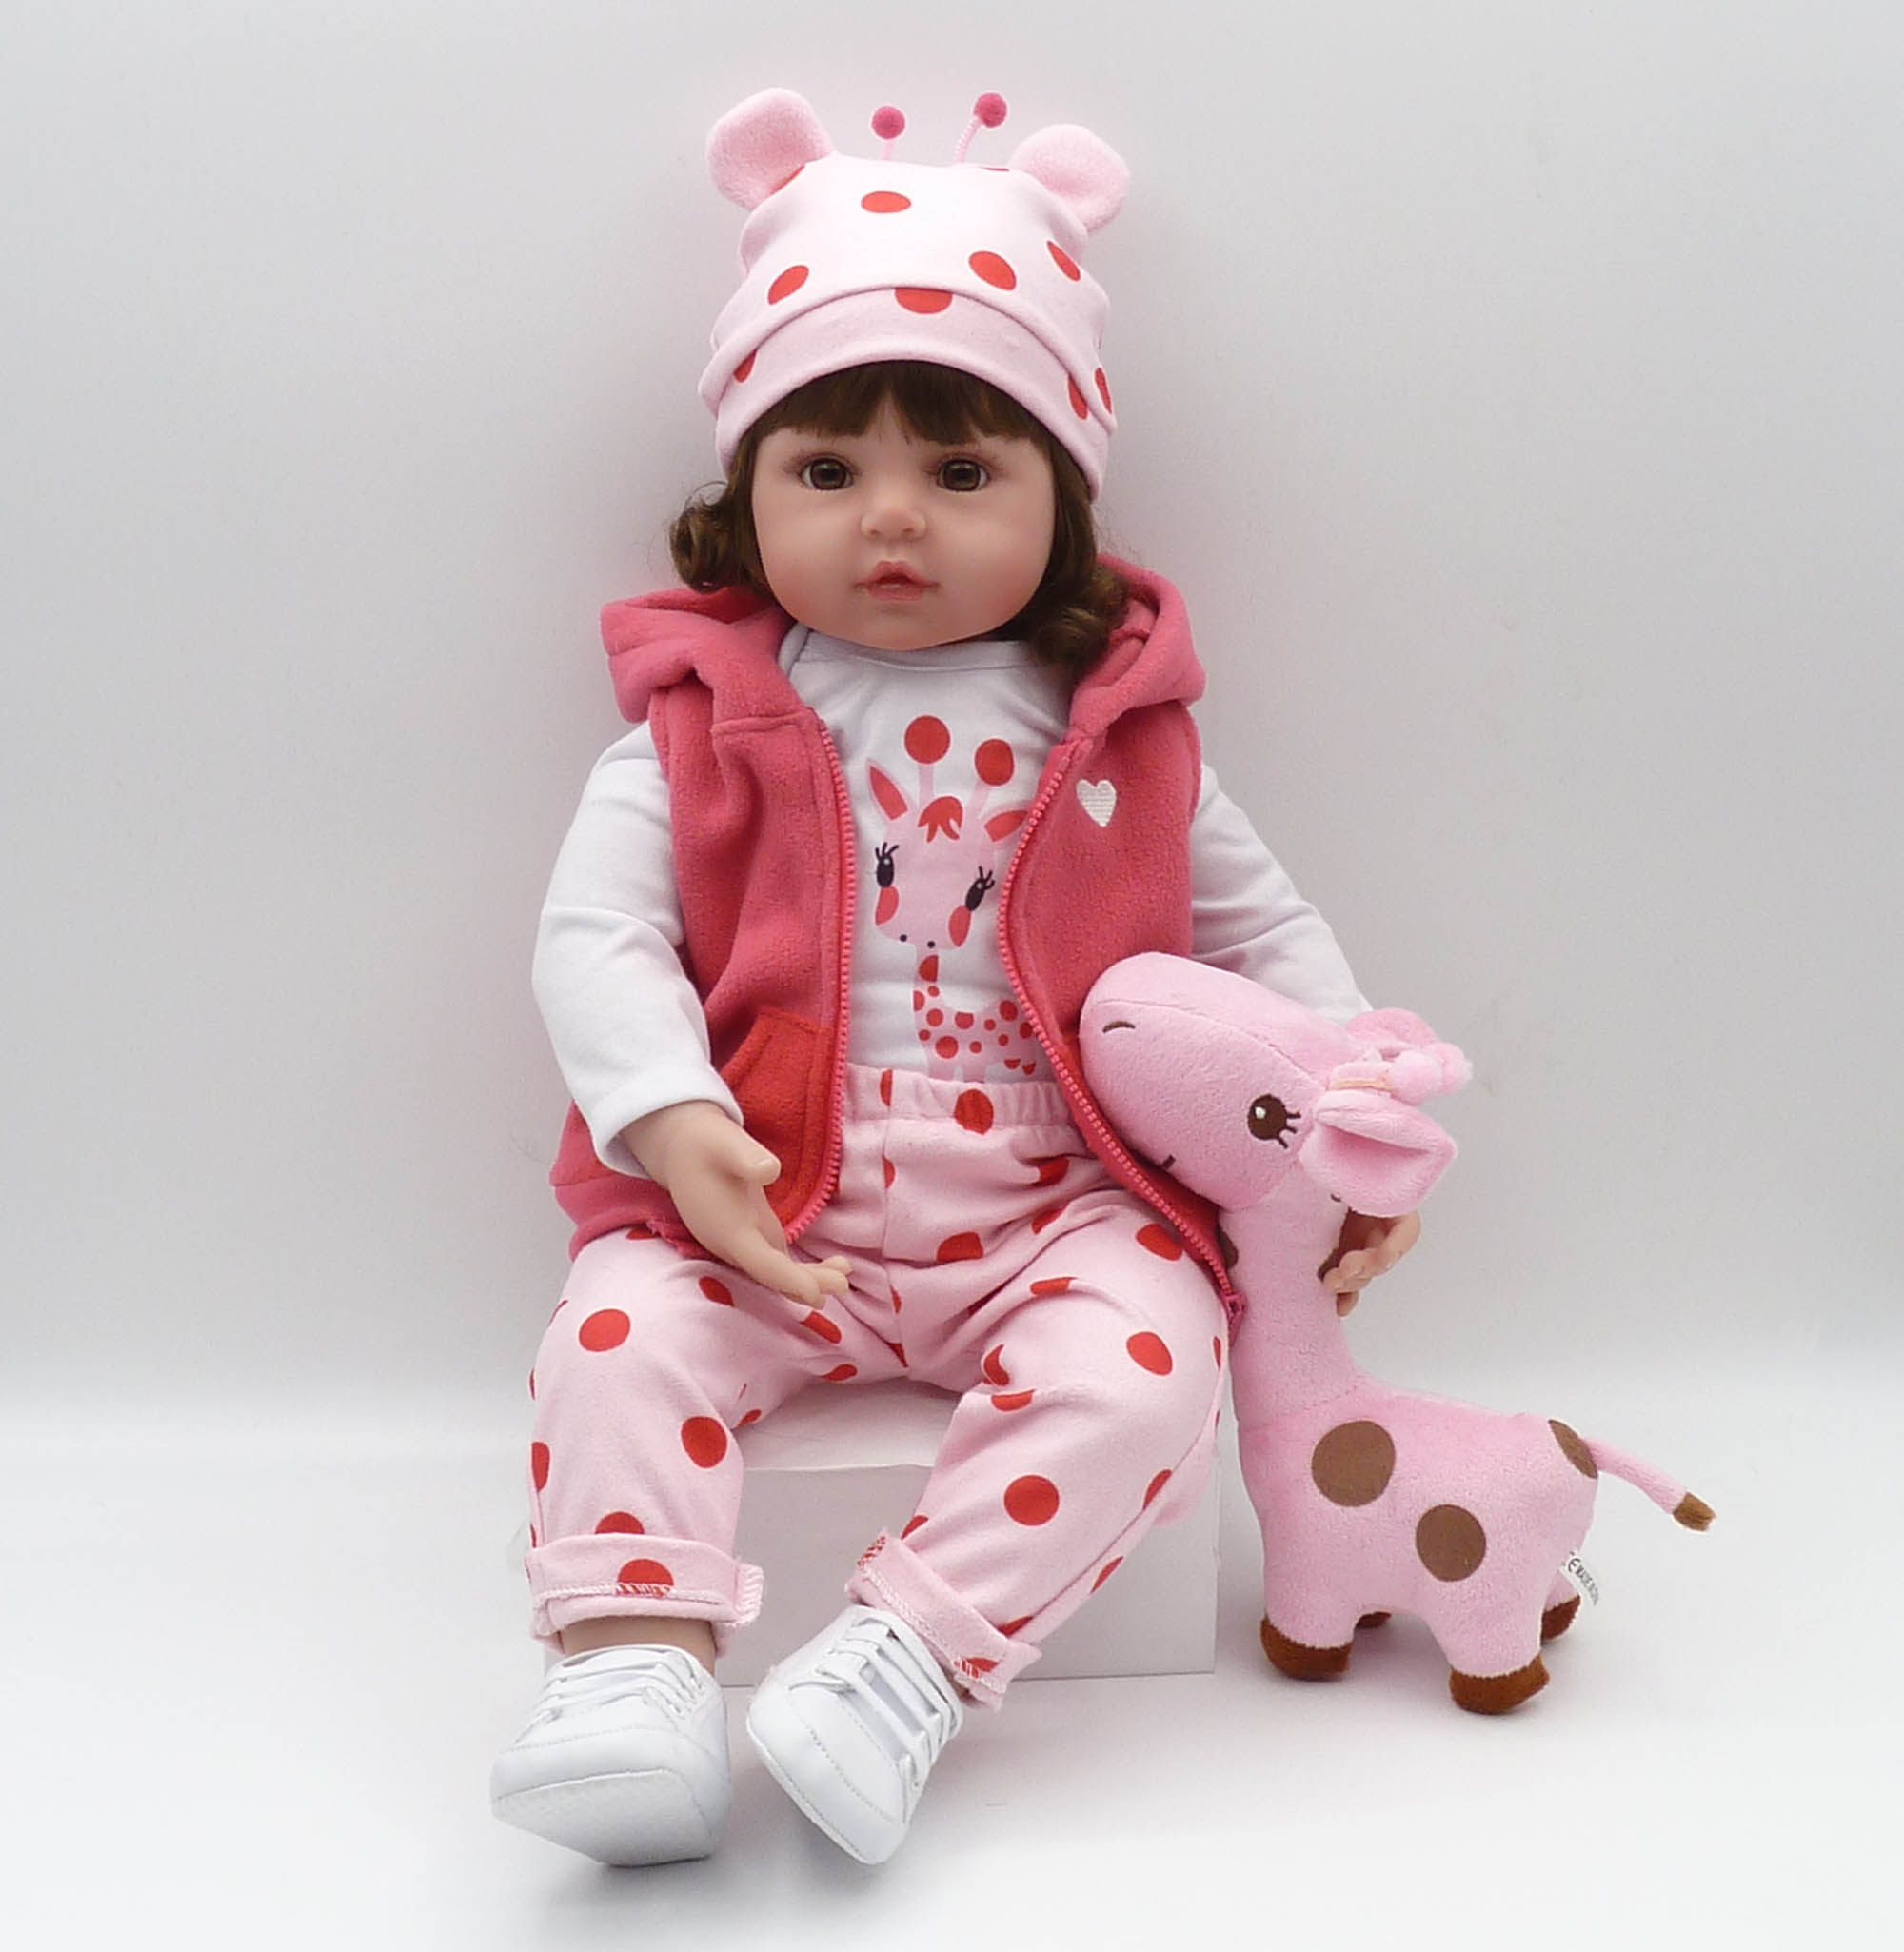 Image 5 - bebe reborn19inch 48cm lifelike doll baby newborn wholesale toys for children Christmas gift and birthday gift doll toys-in Dolls from Toys & Hobbies